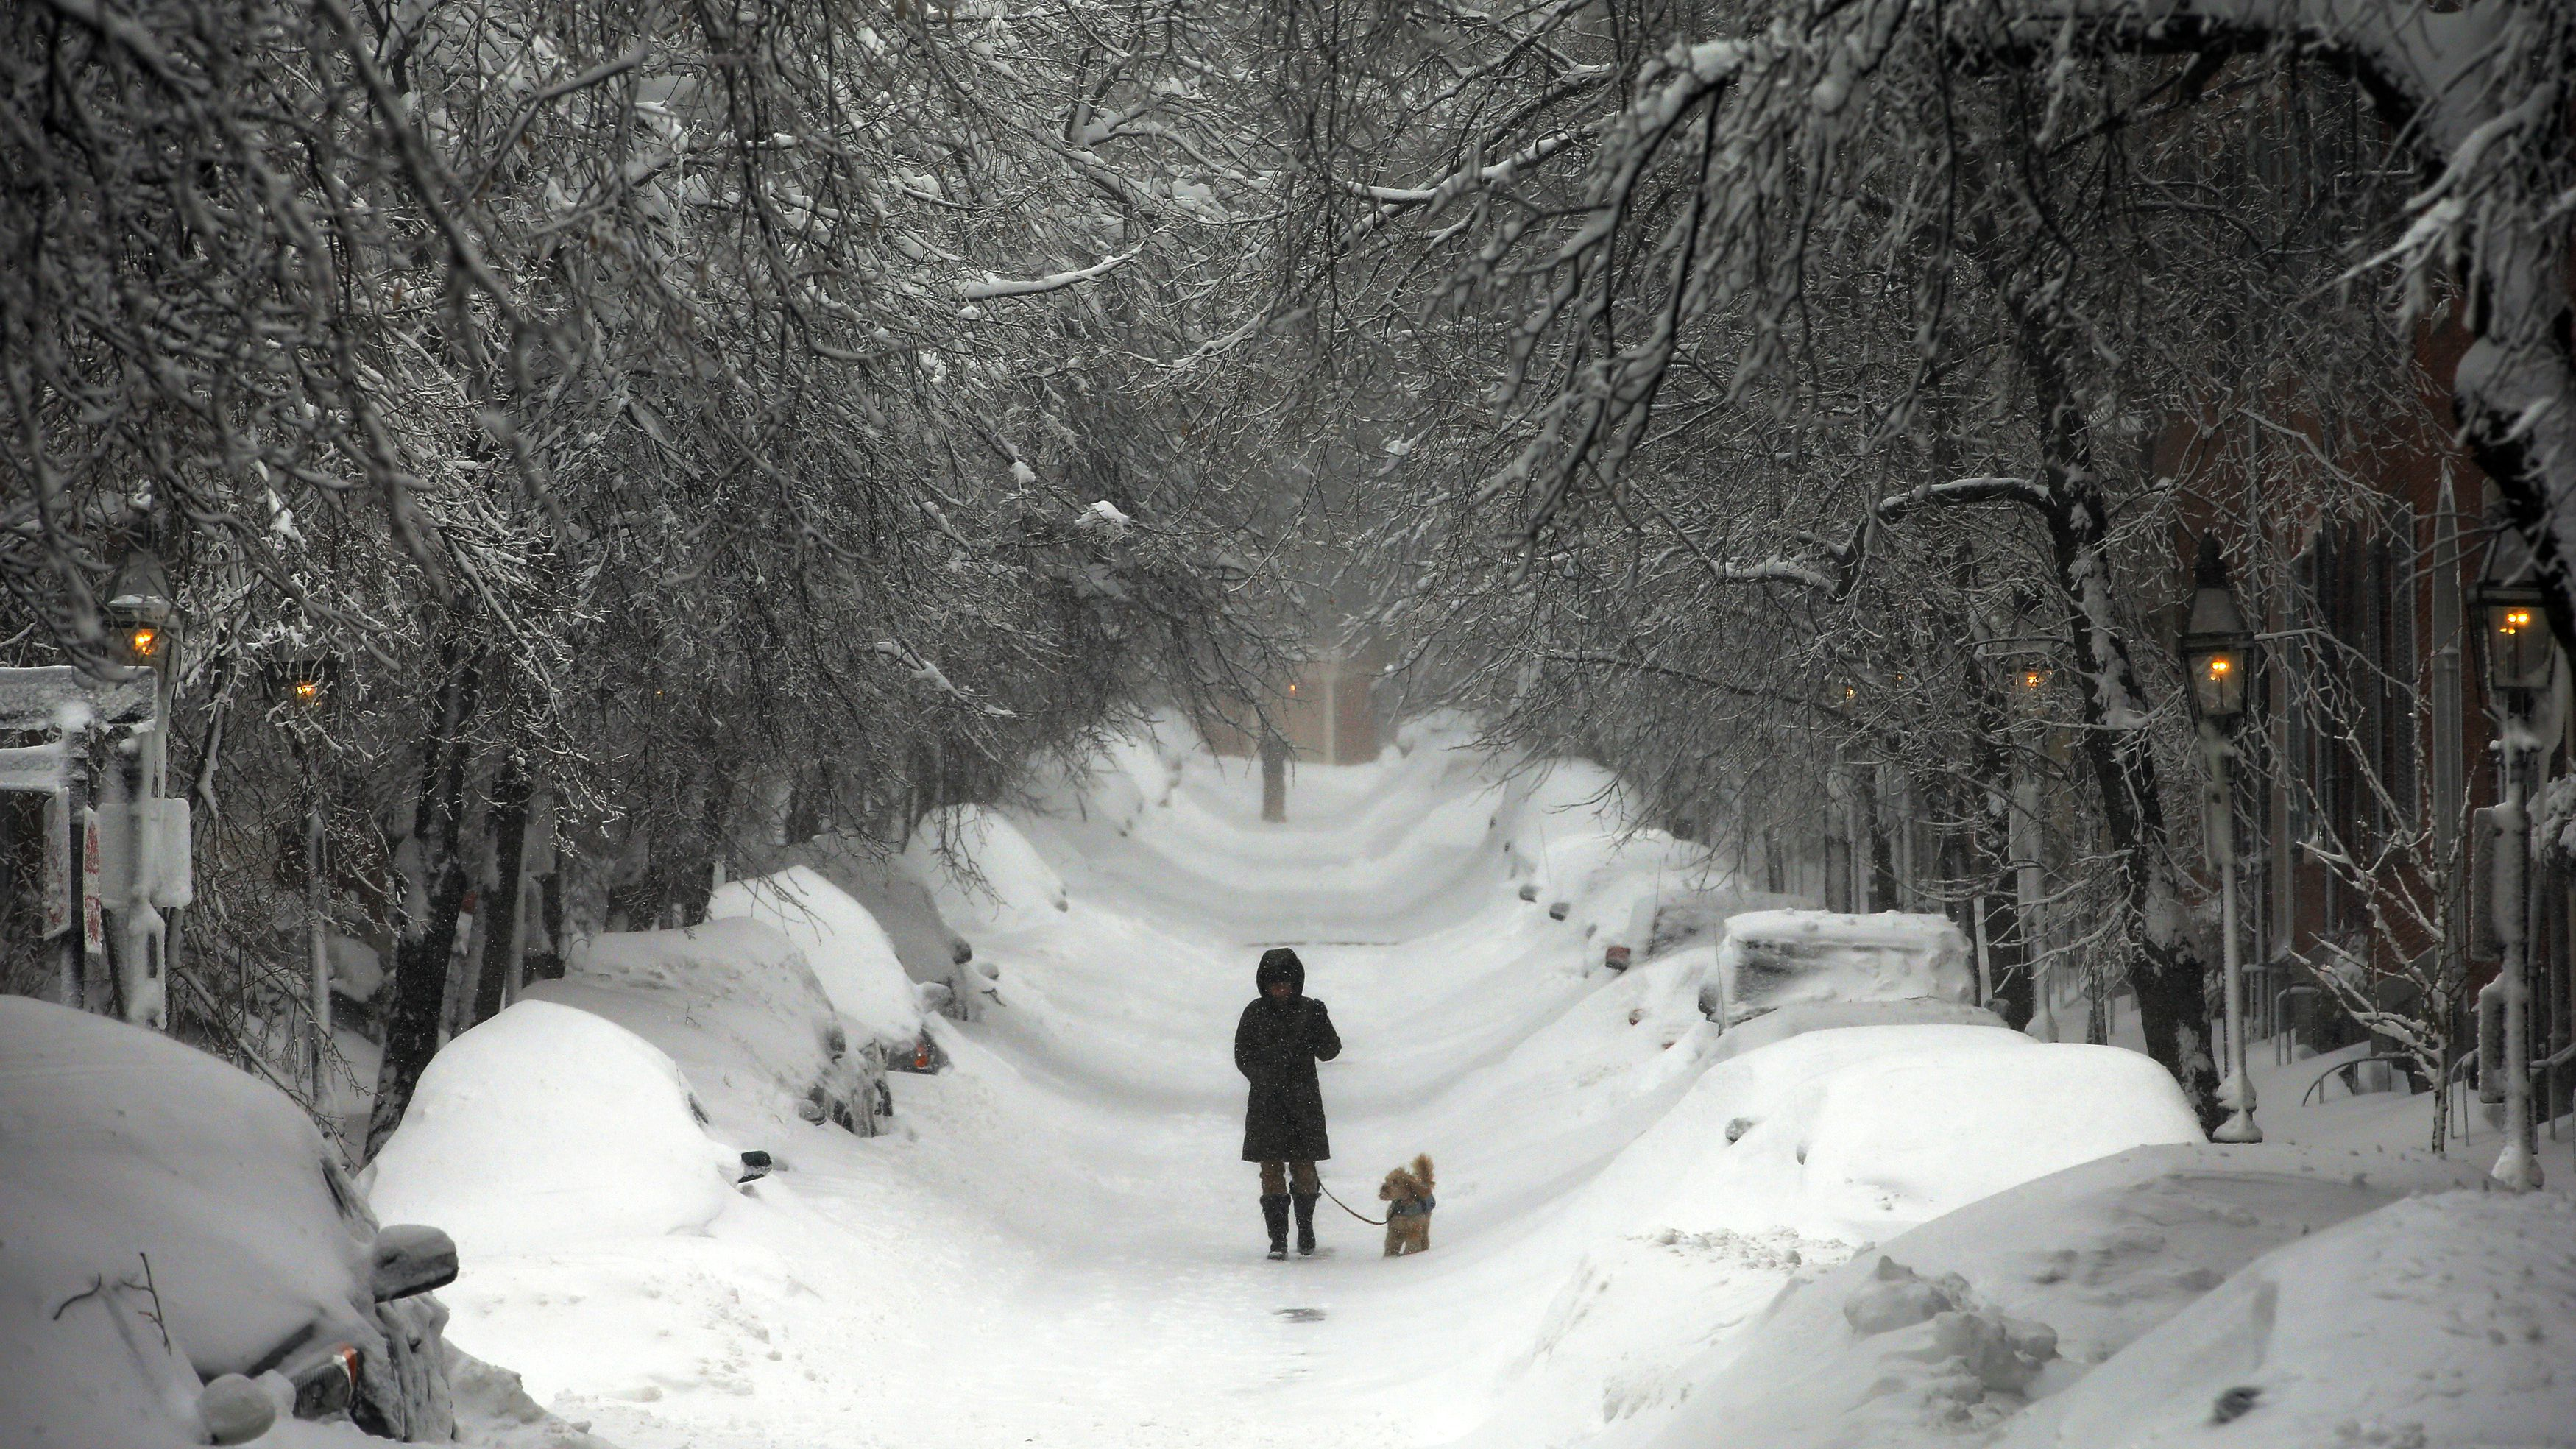 A woman walks down Beacon Hill during a severe winter storm in Boston, Massachusetts February 9, 2013. A blizzard pummelled the Northeastern United States, killing at least one person, leaving hundreds of thousands without power and disrupting thousands of flights, media and officials said. REUTERS/Brian Snyder (UNITED STATES - Tags: ENVIRONMENT DISASTER)